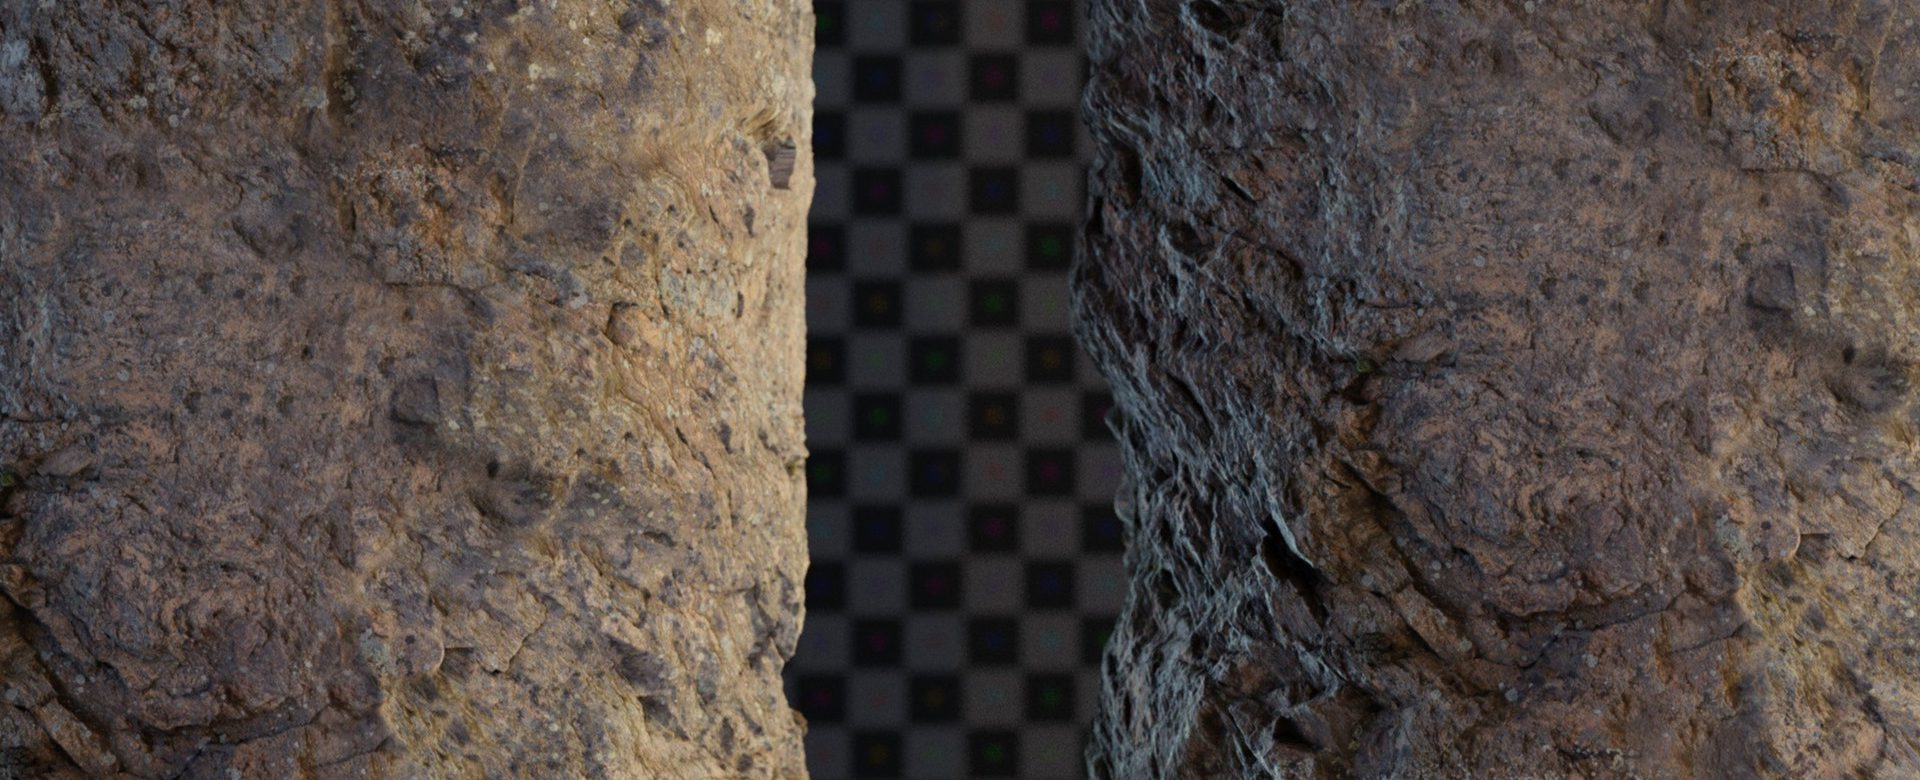 Eisklotz – Page 7 – Seamless Textures and HDRIs for 3D